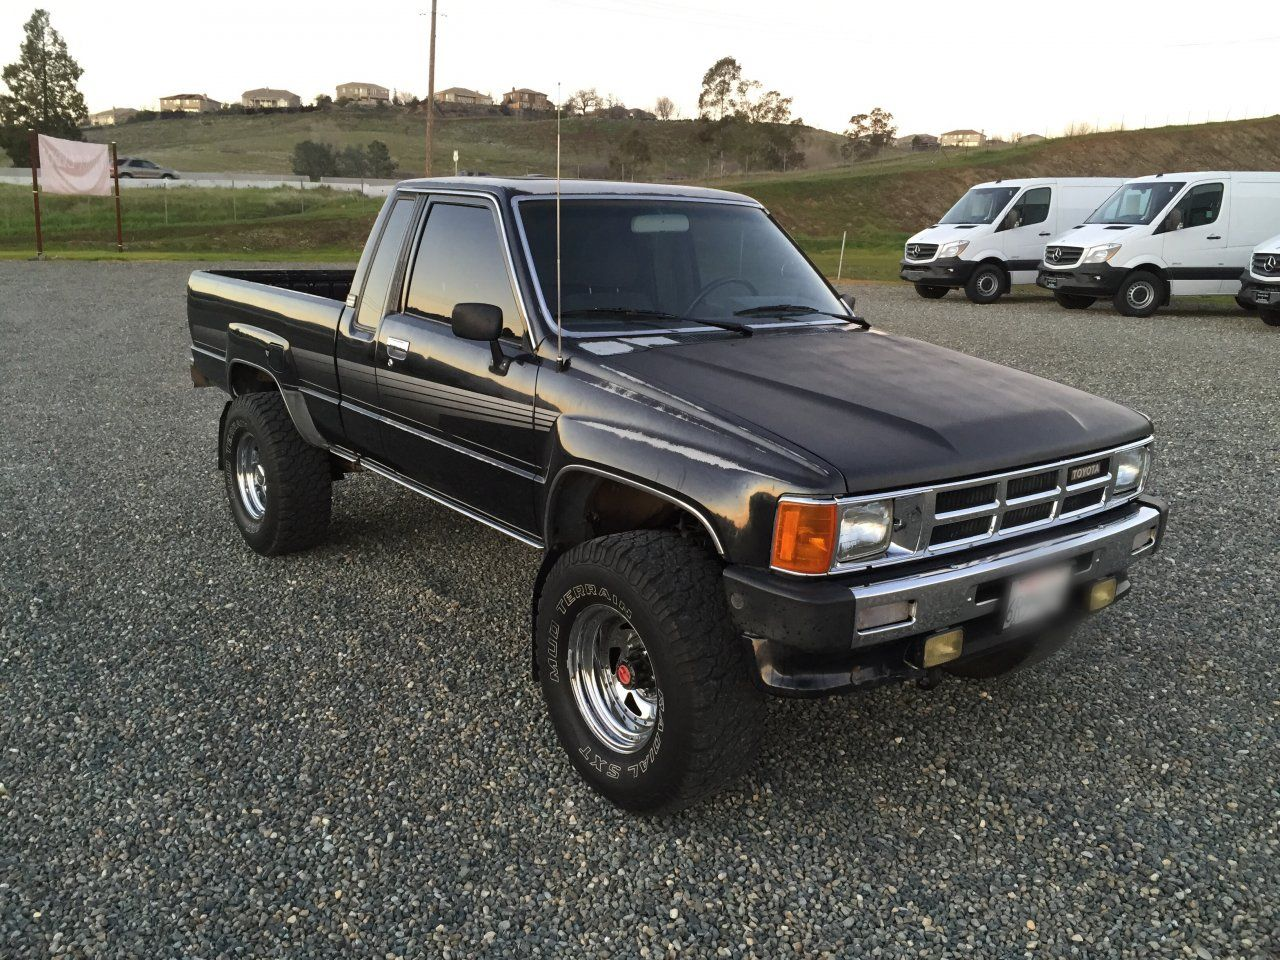 For Sale 1986 Toyota 4x4 Xtra Cab Turbo Toyota 4x4 Toyota